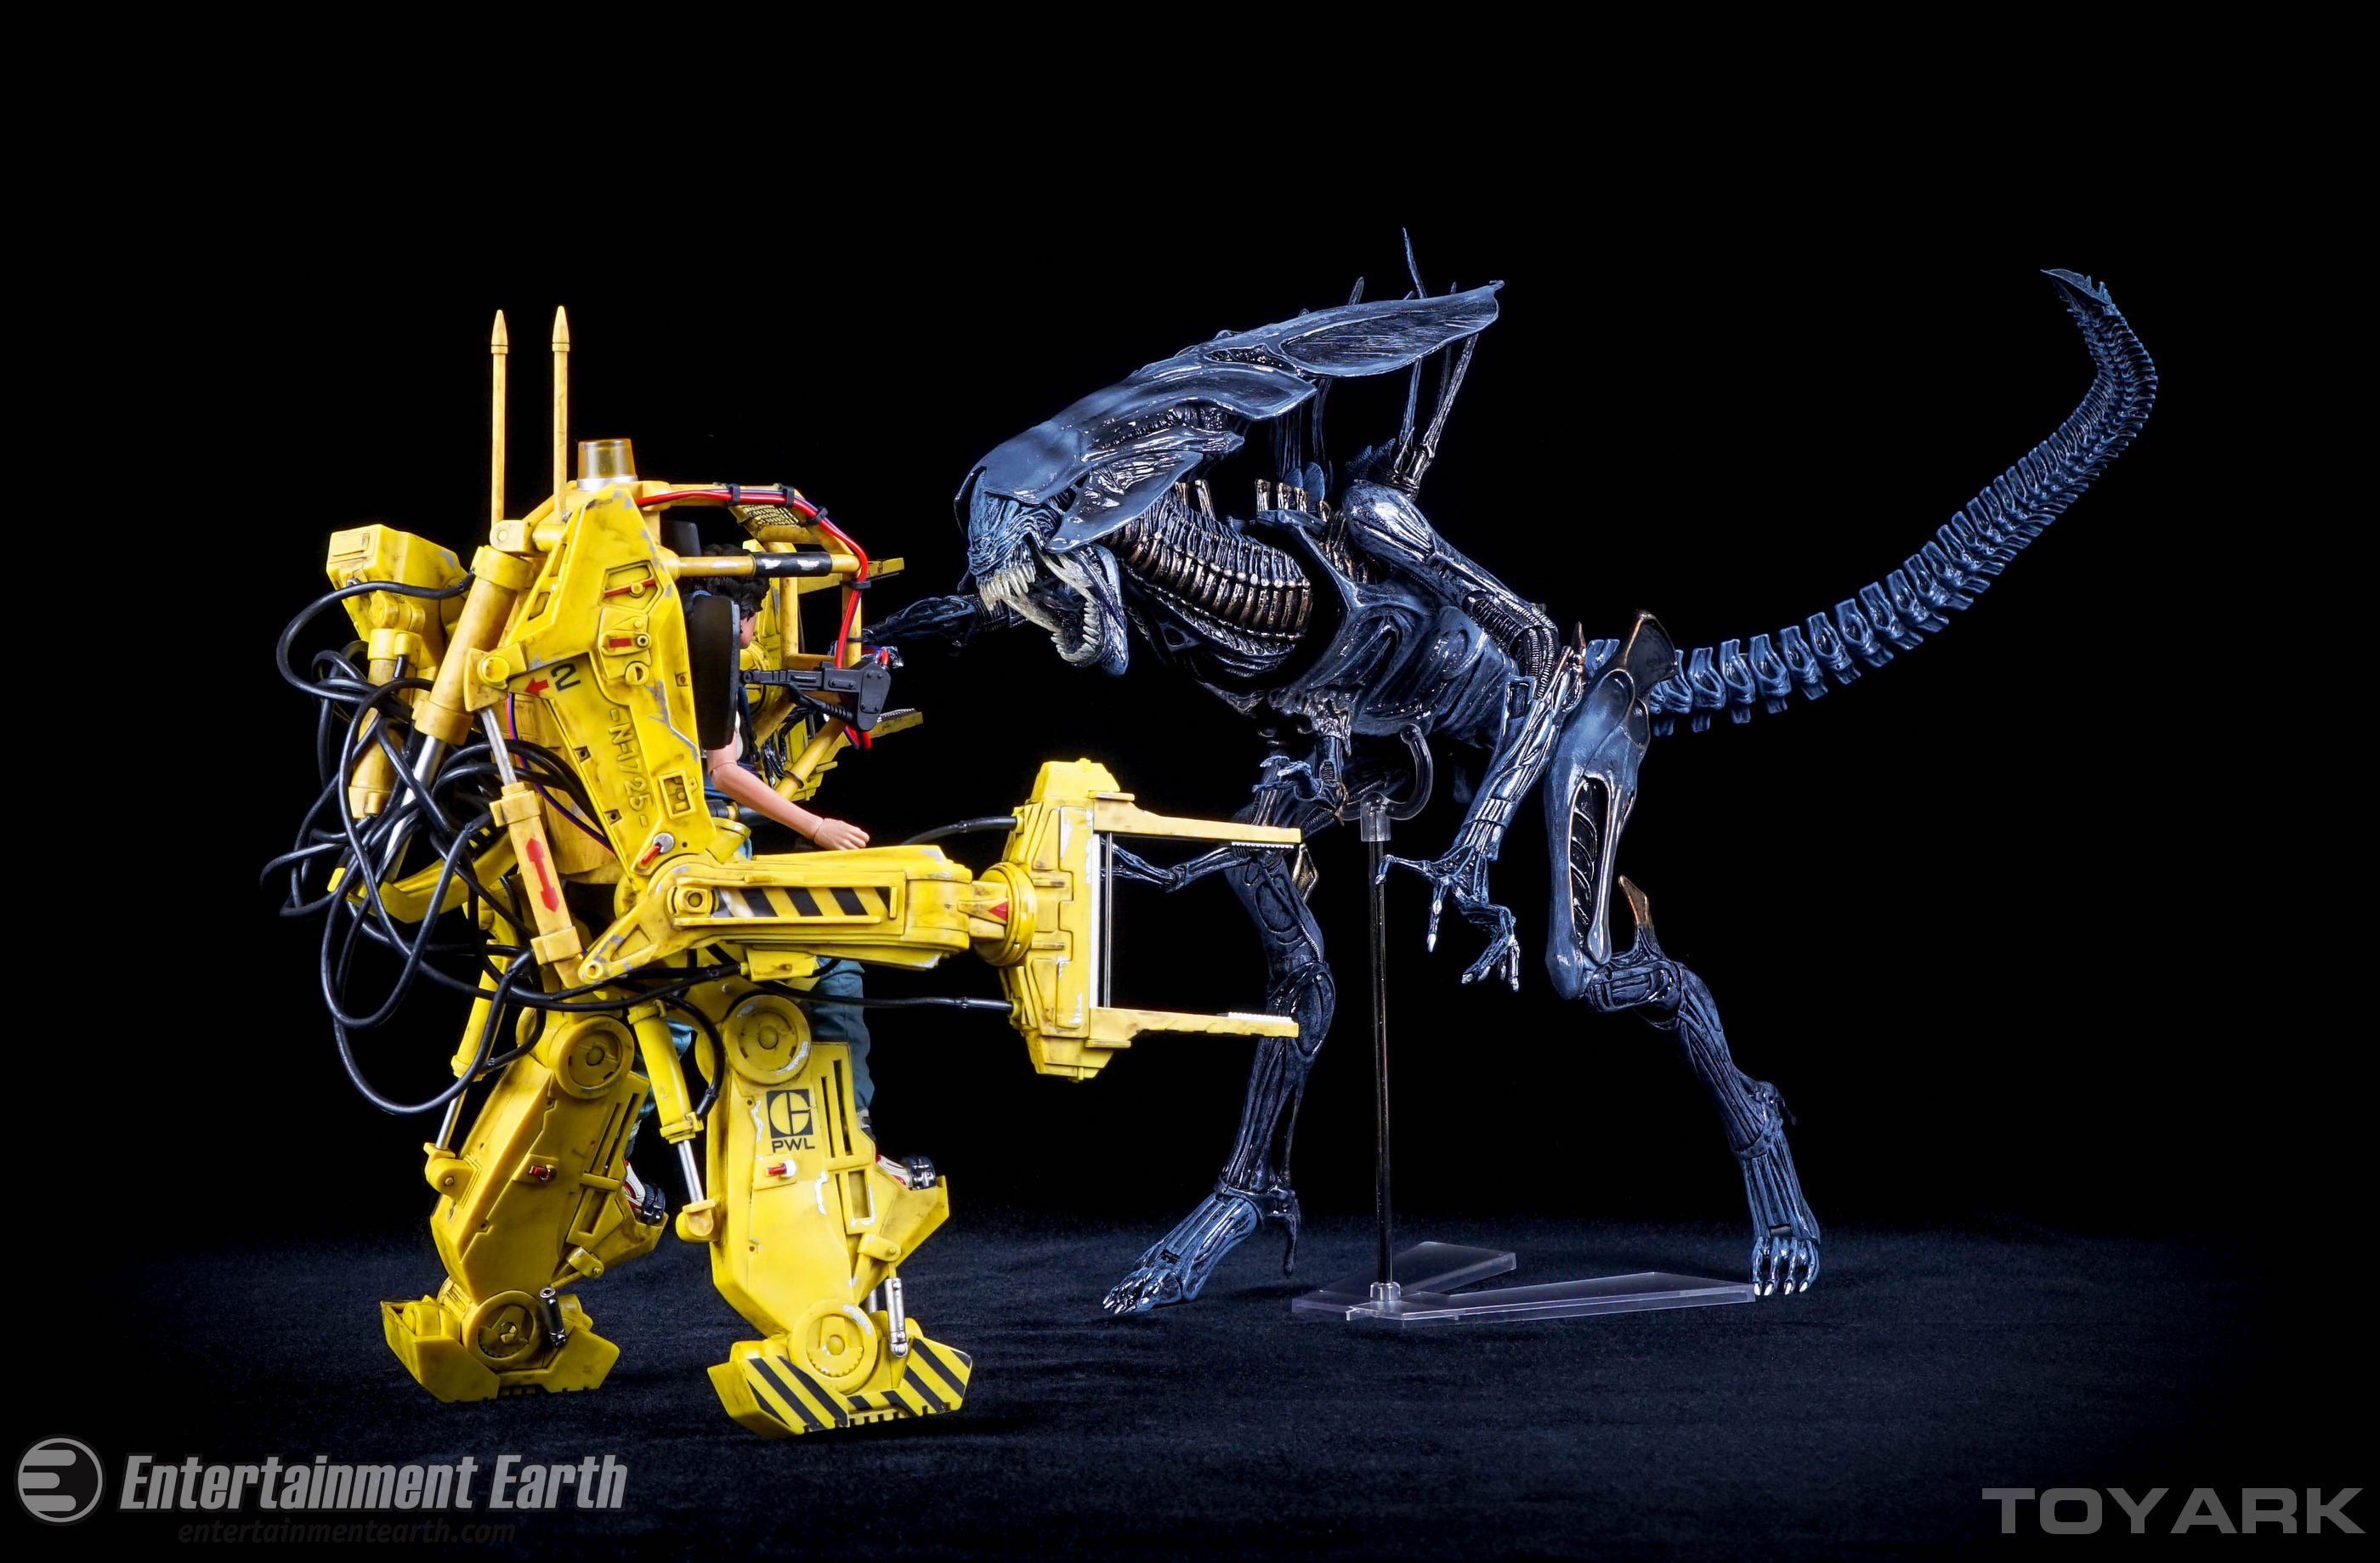 http://news.toyark.com/wp-content/uploads/sites/4/2015/10/NECA-Aliens-Power-Loader-054.jpg